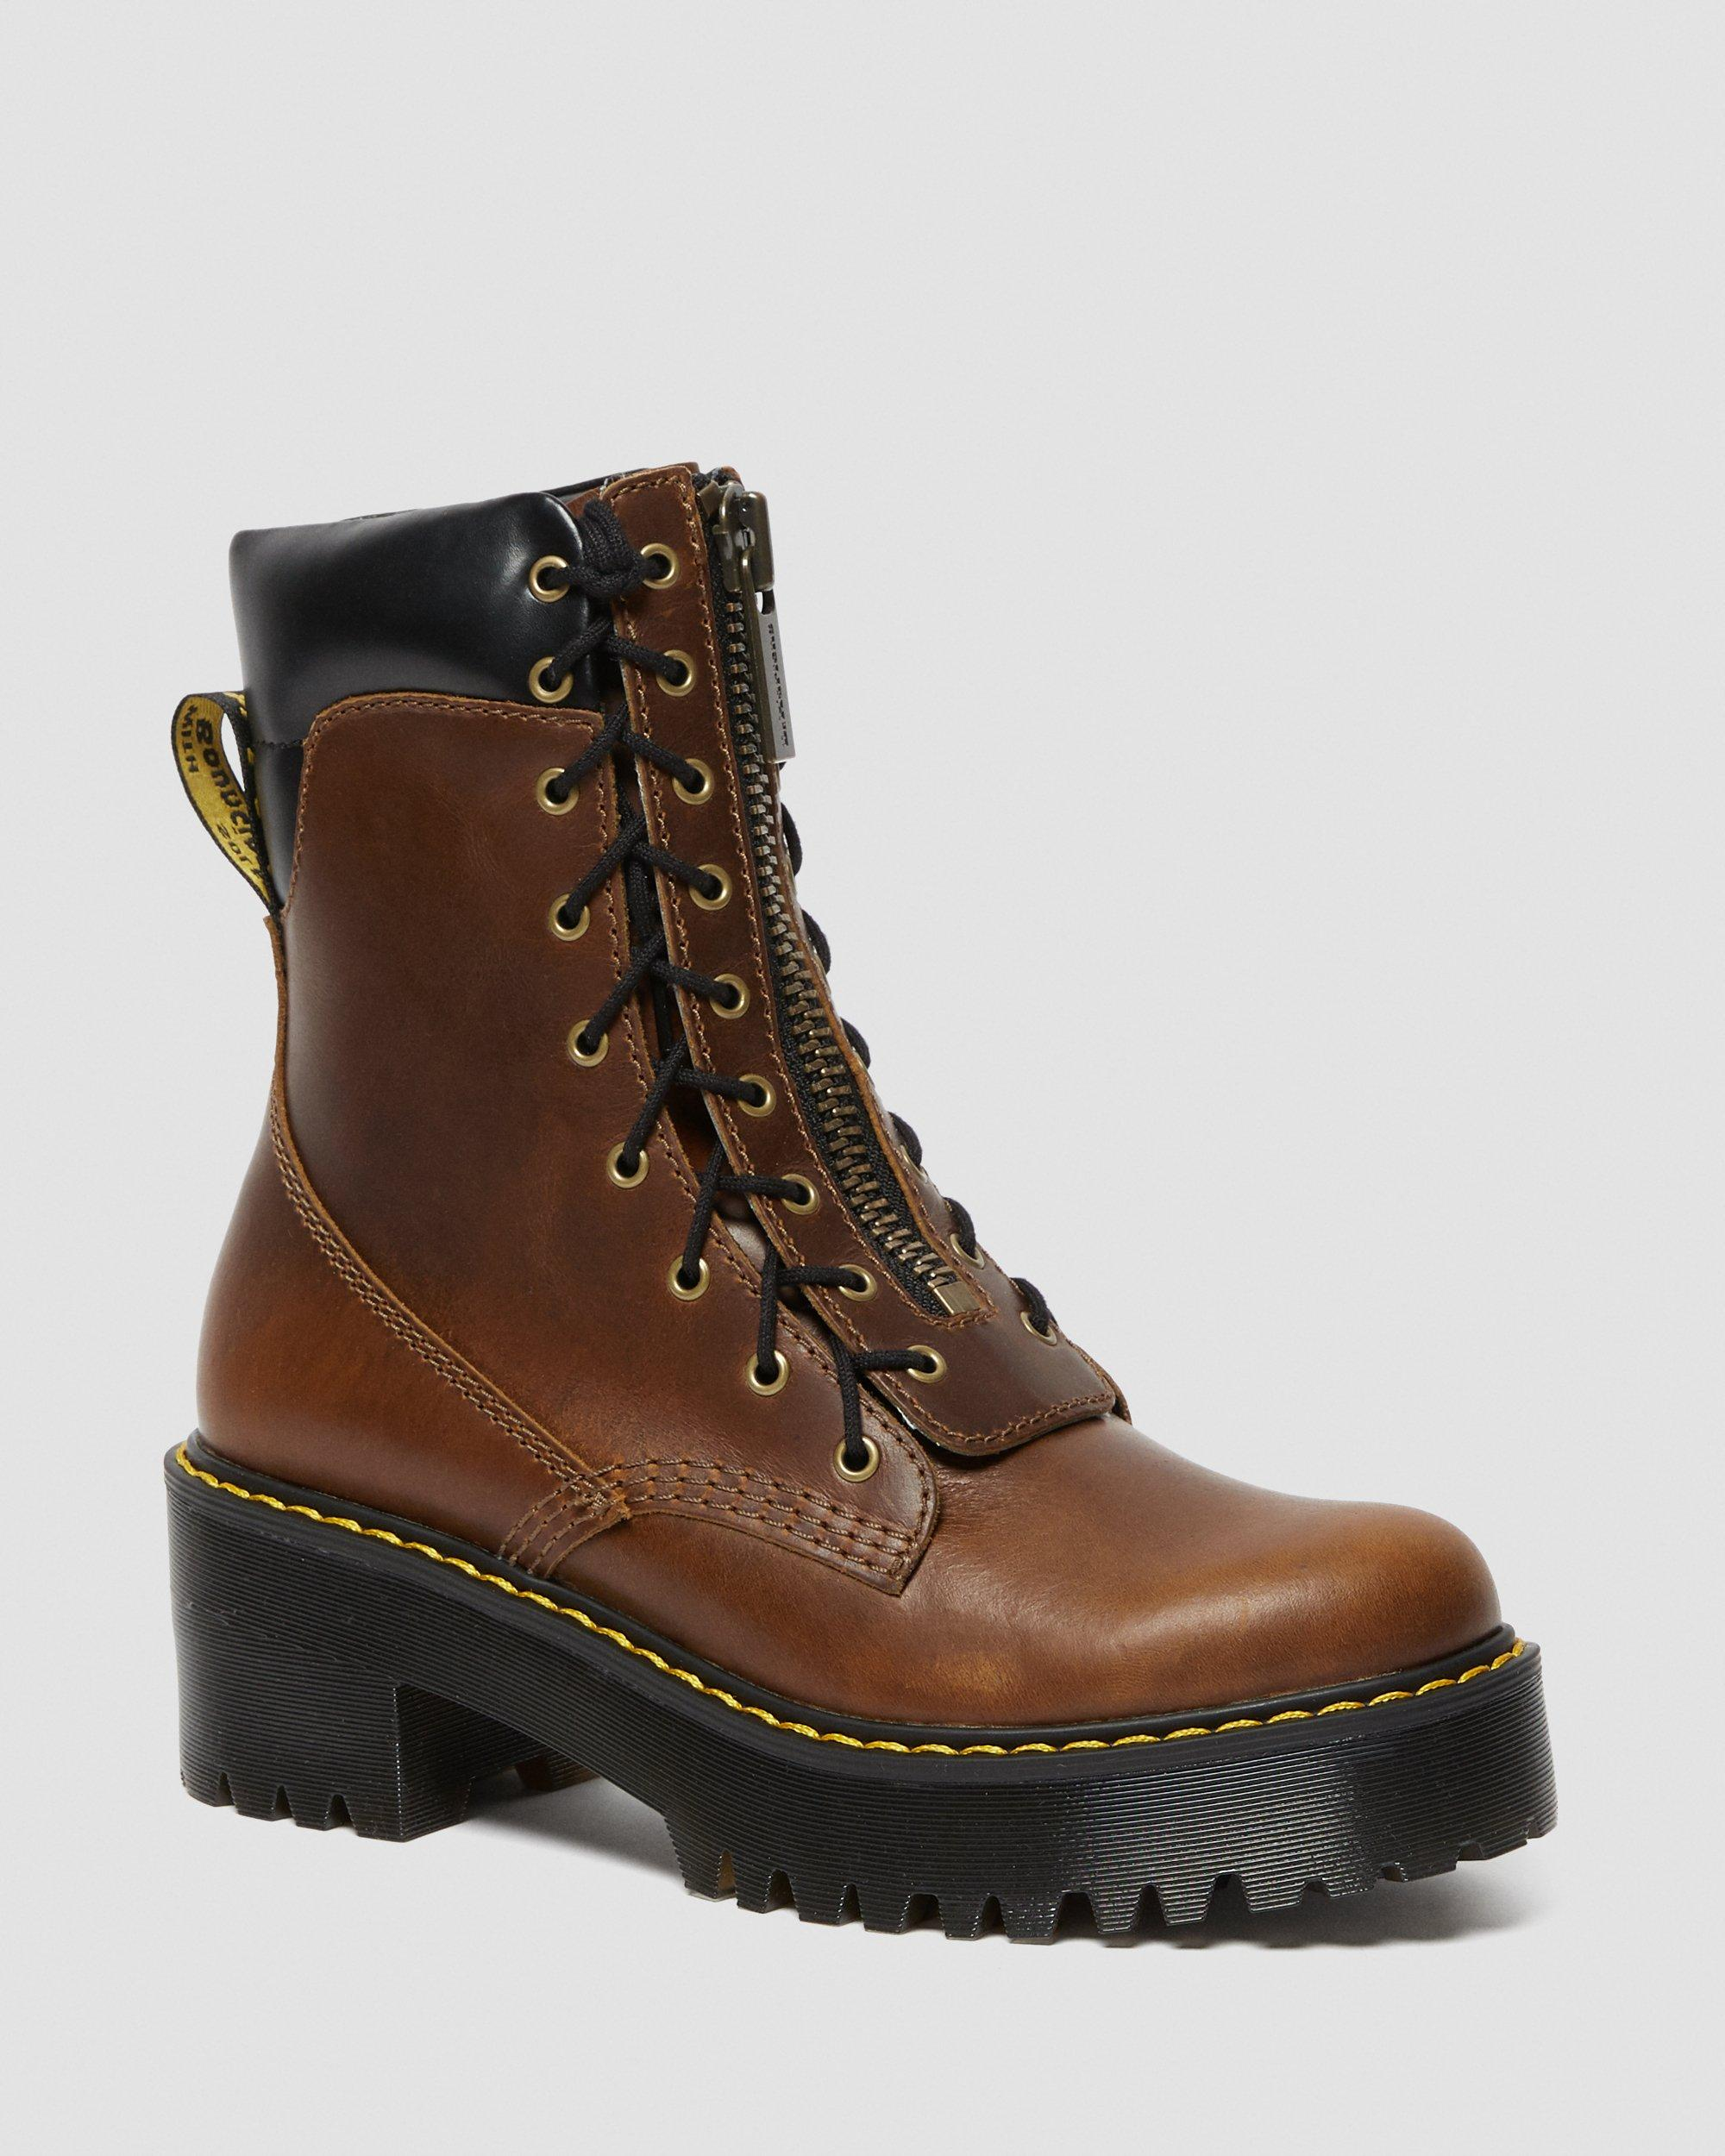 KARMILLA LEATHER LACE UP BOOTS | Dr